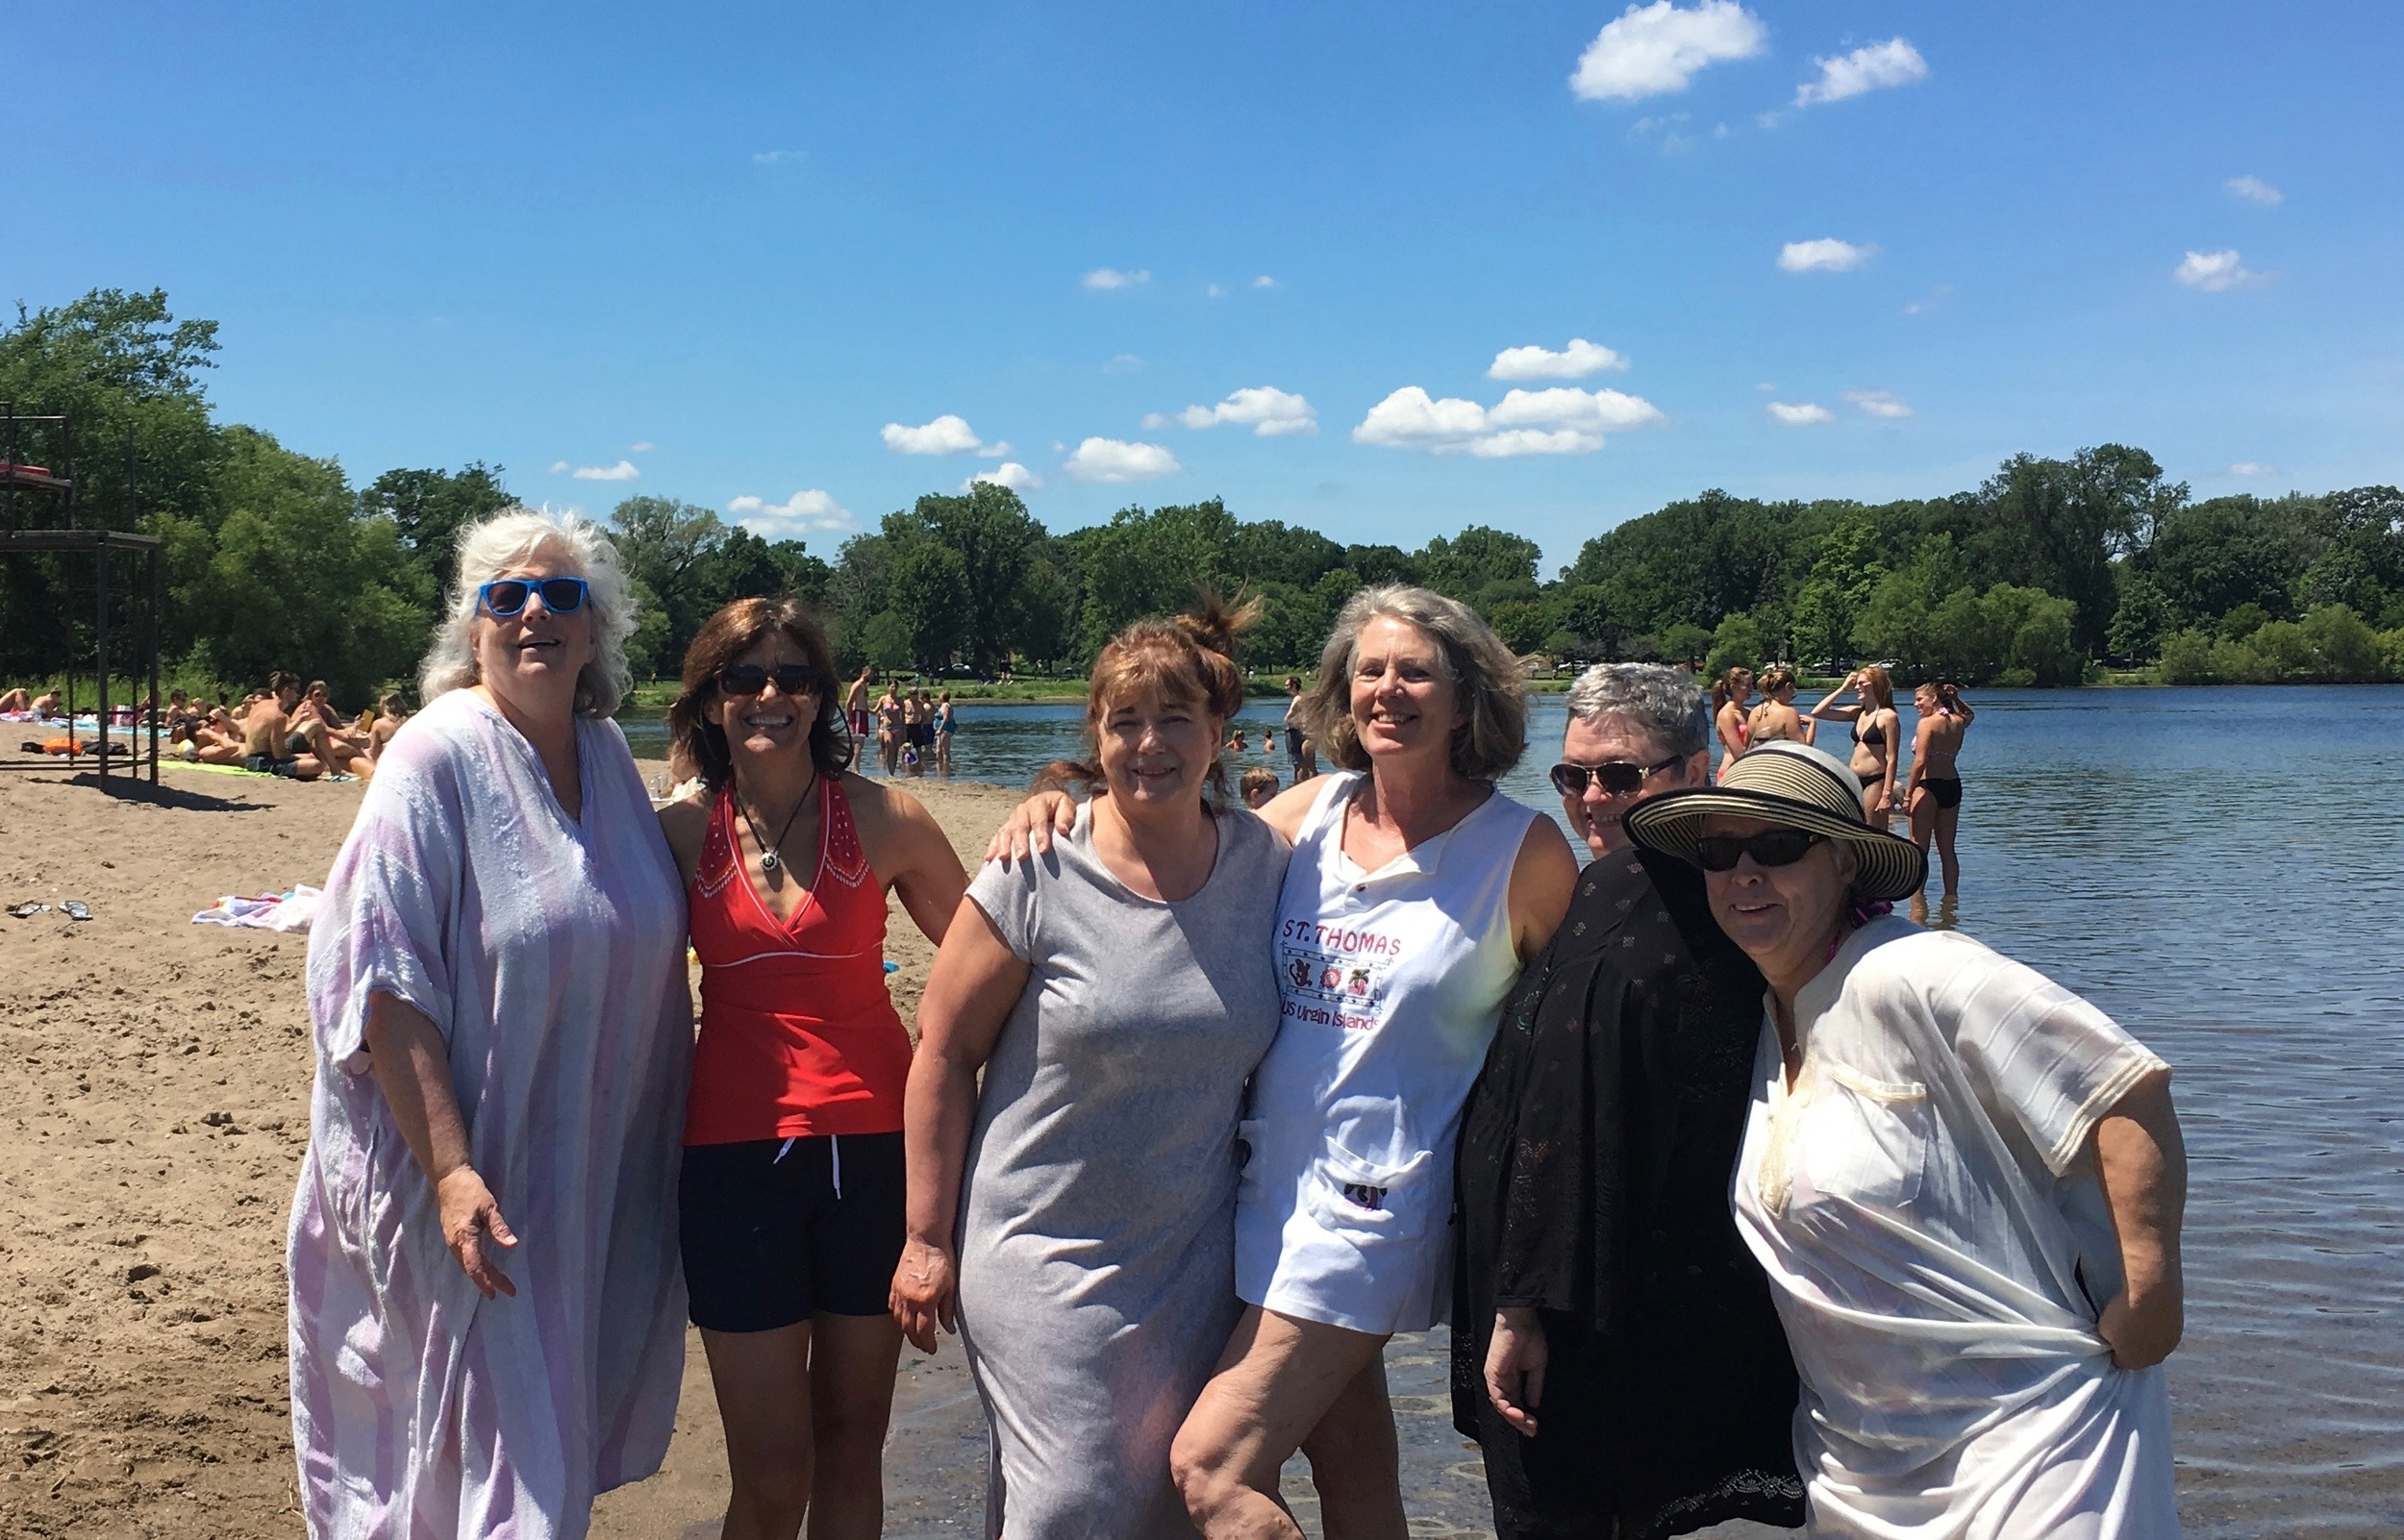 Moms in muumuus at the lake, missing a few more discreet madams - Sheree, Val, and Becky.